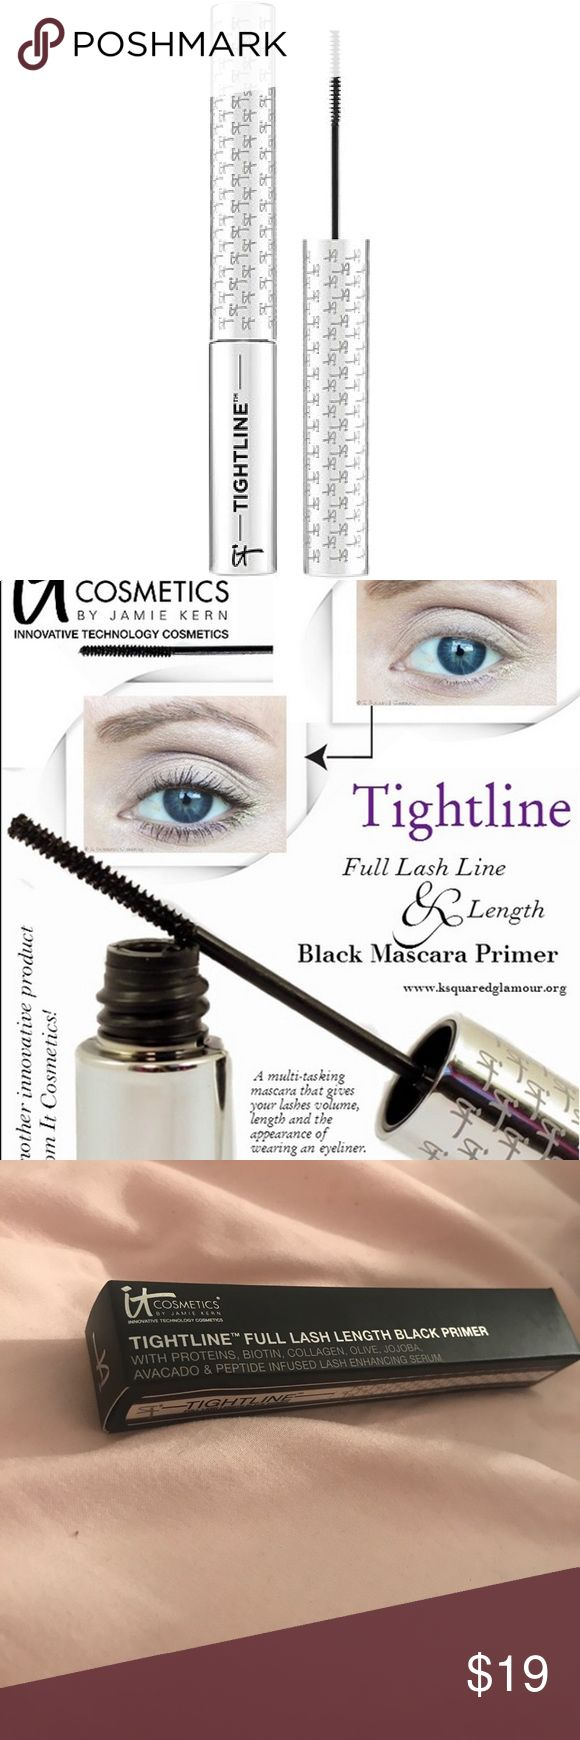 NWT It Cosmetics Tightline Mascara Primer NWT, never used black mascara primer. This helps elongate your lashes and give them volume. It Cosmetics Makeup Mascara